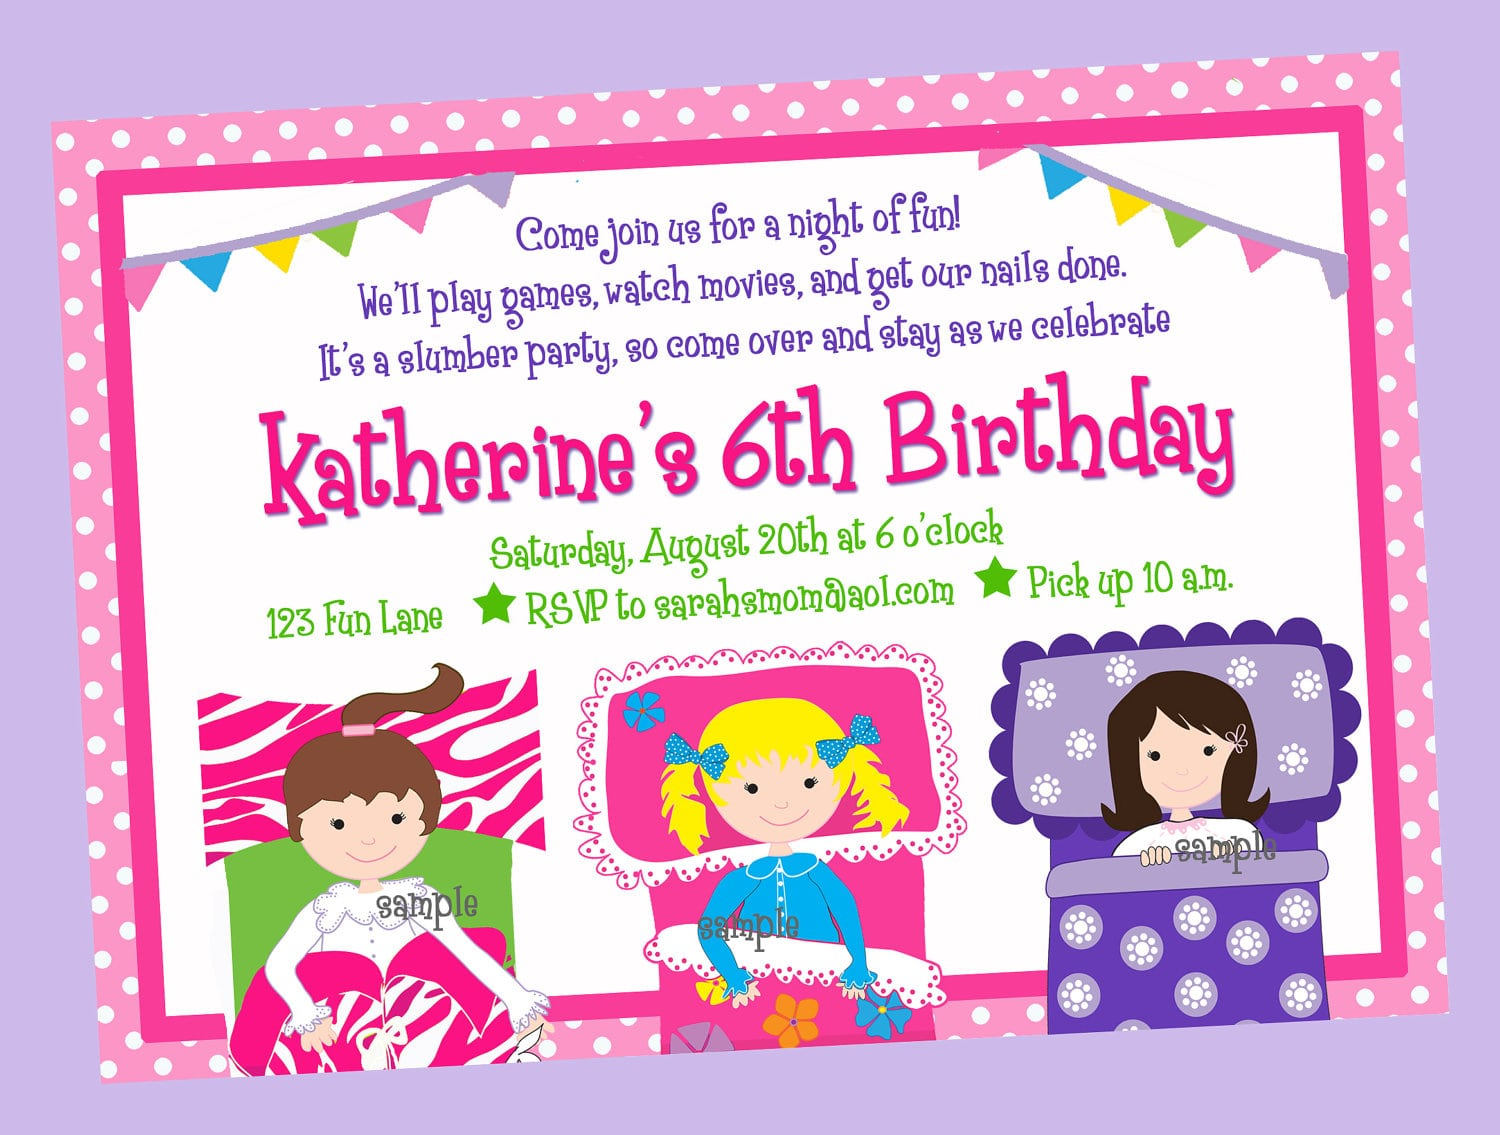 Pajama Party Invitation Pajama Party Invitation For Simple